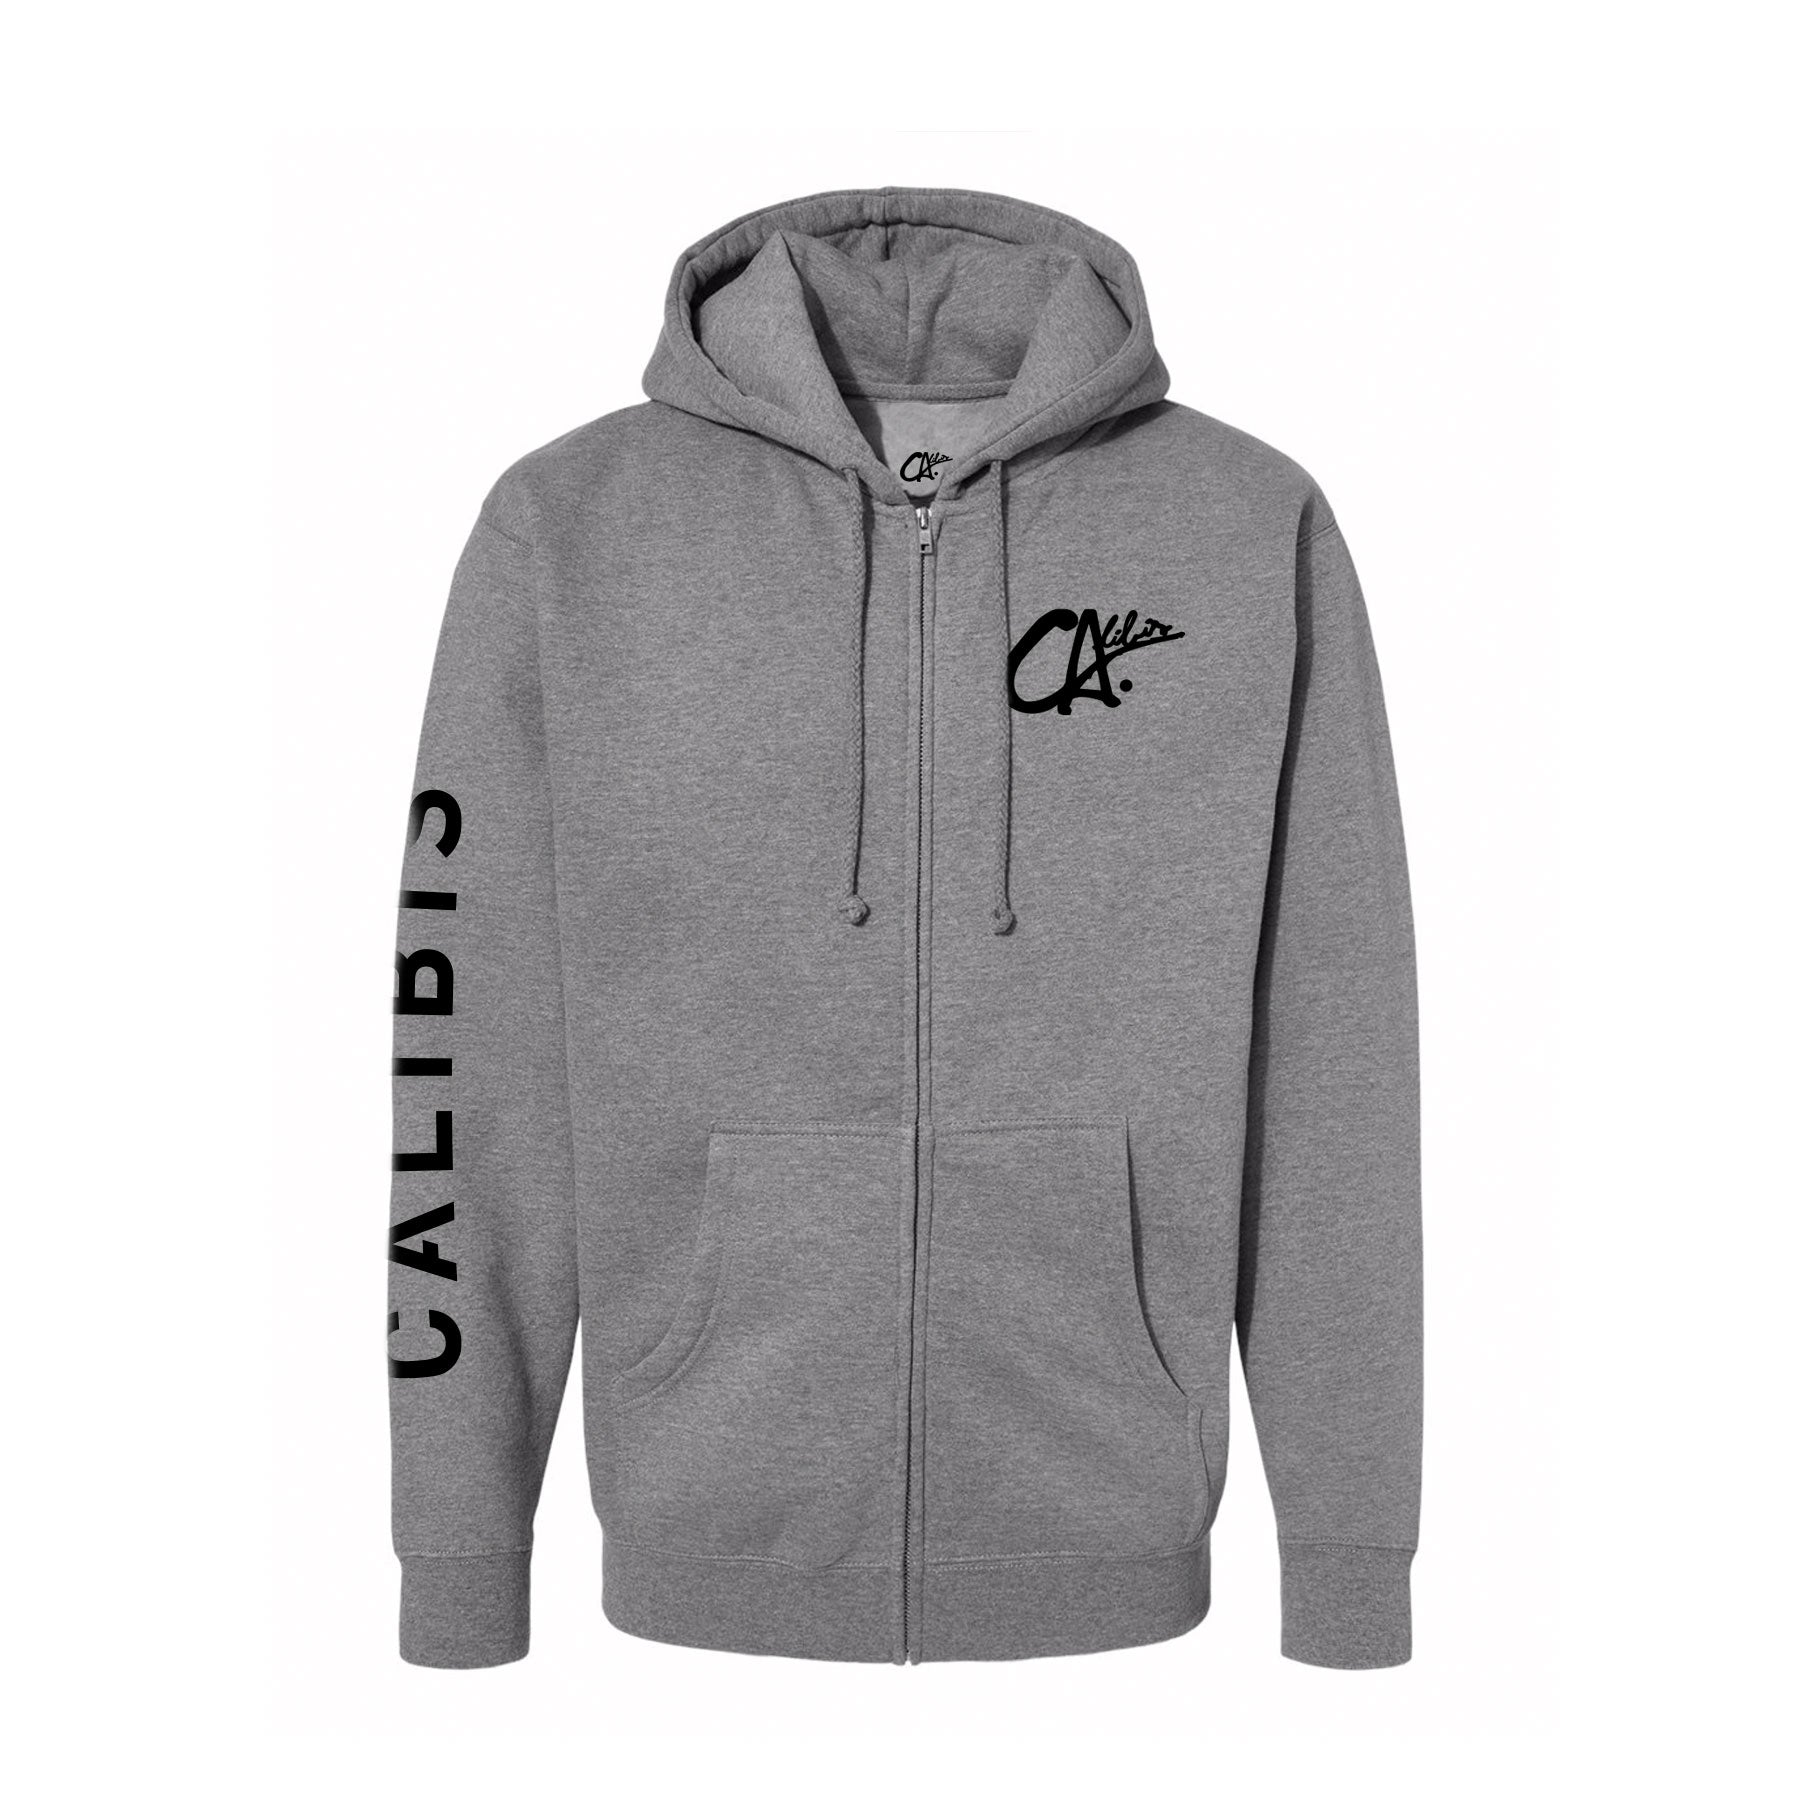 Logo Zip Hoodie by Calibis Clothing